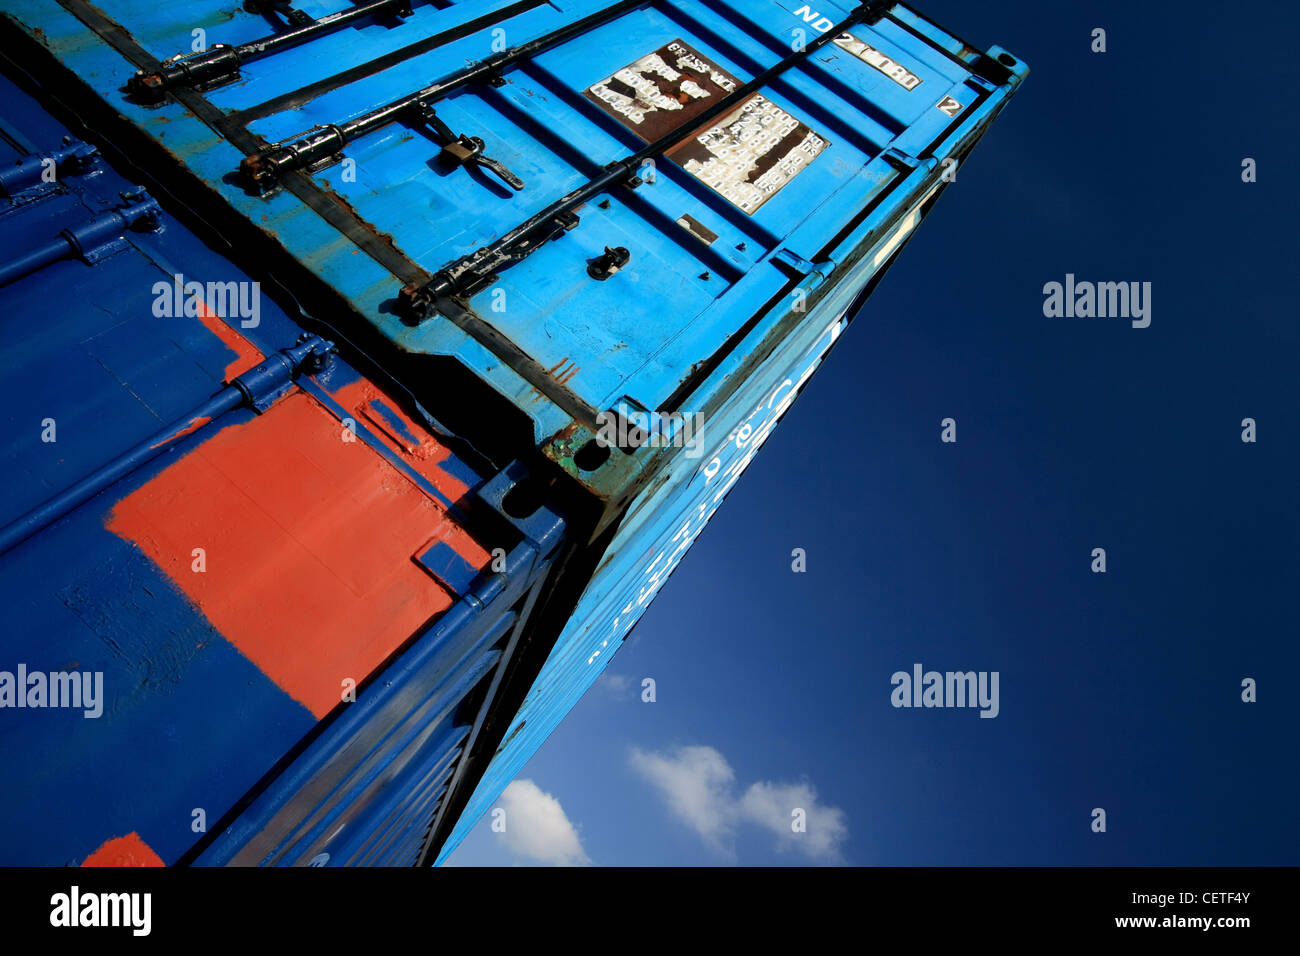 An angled view of blue steel containers stacked at Goole. - Stock Image